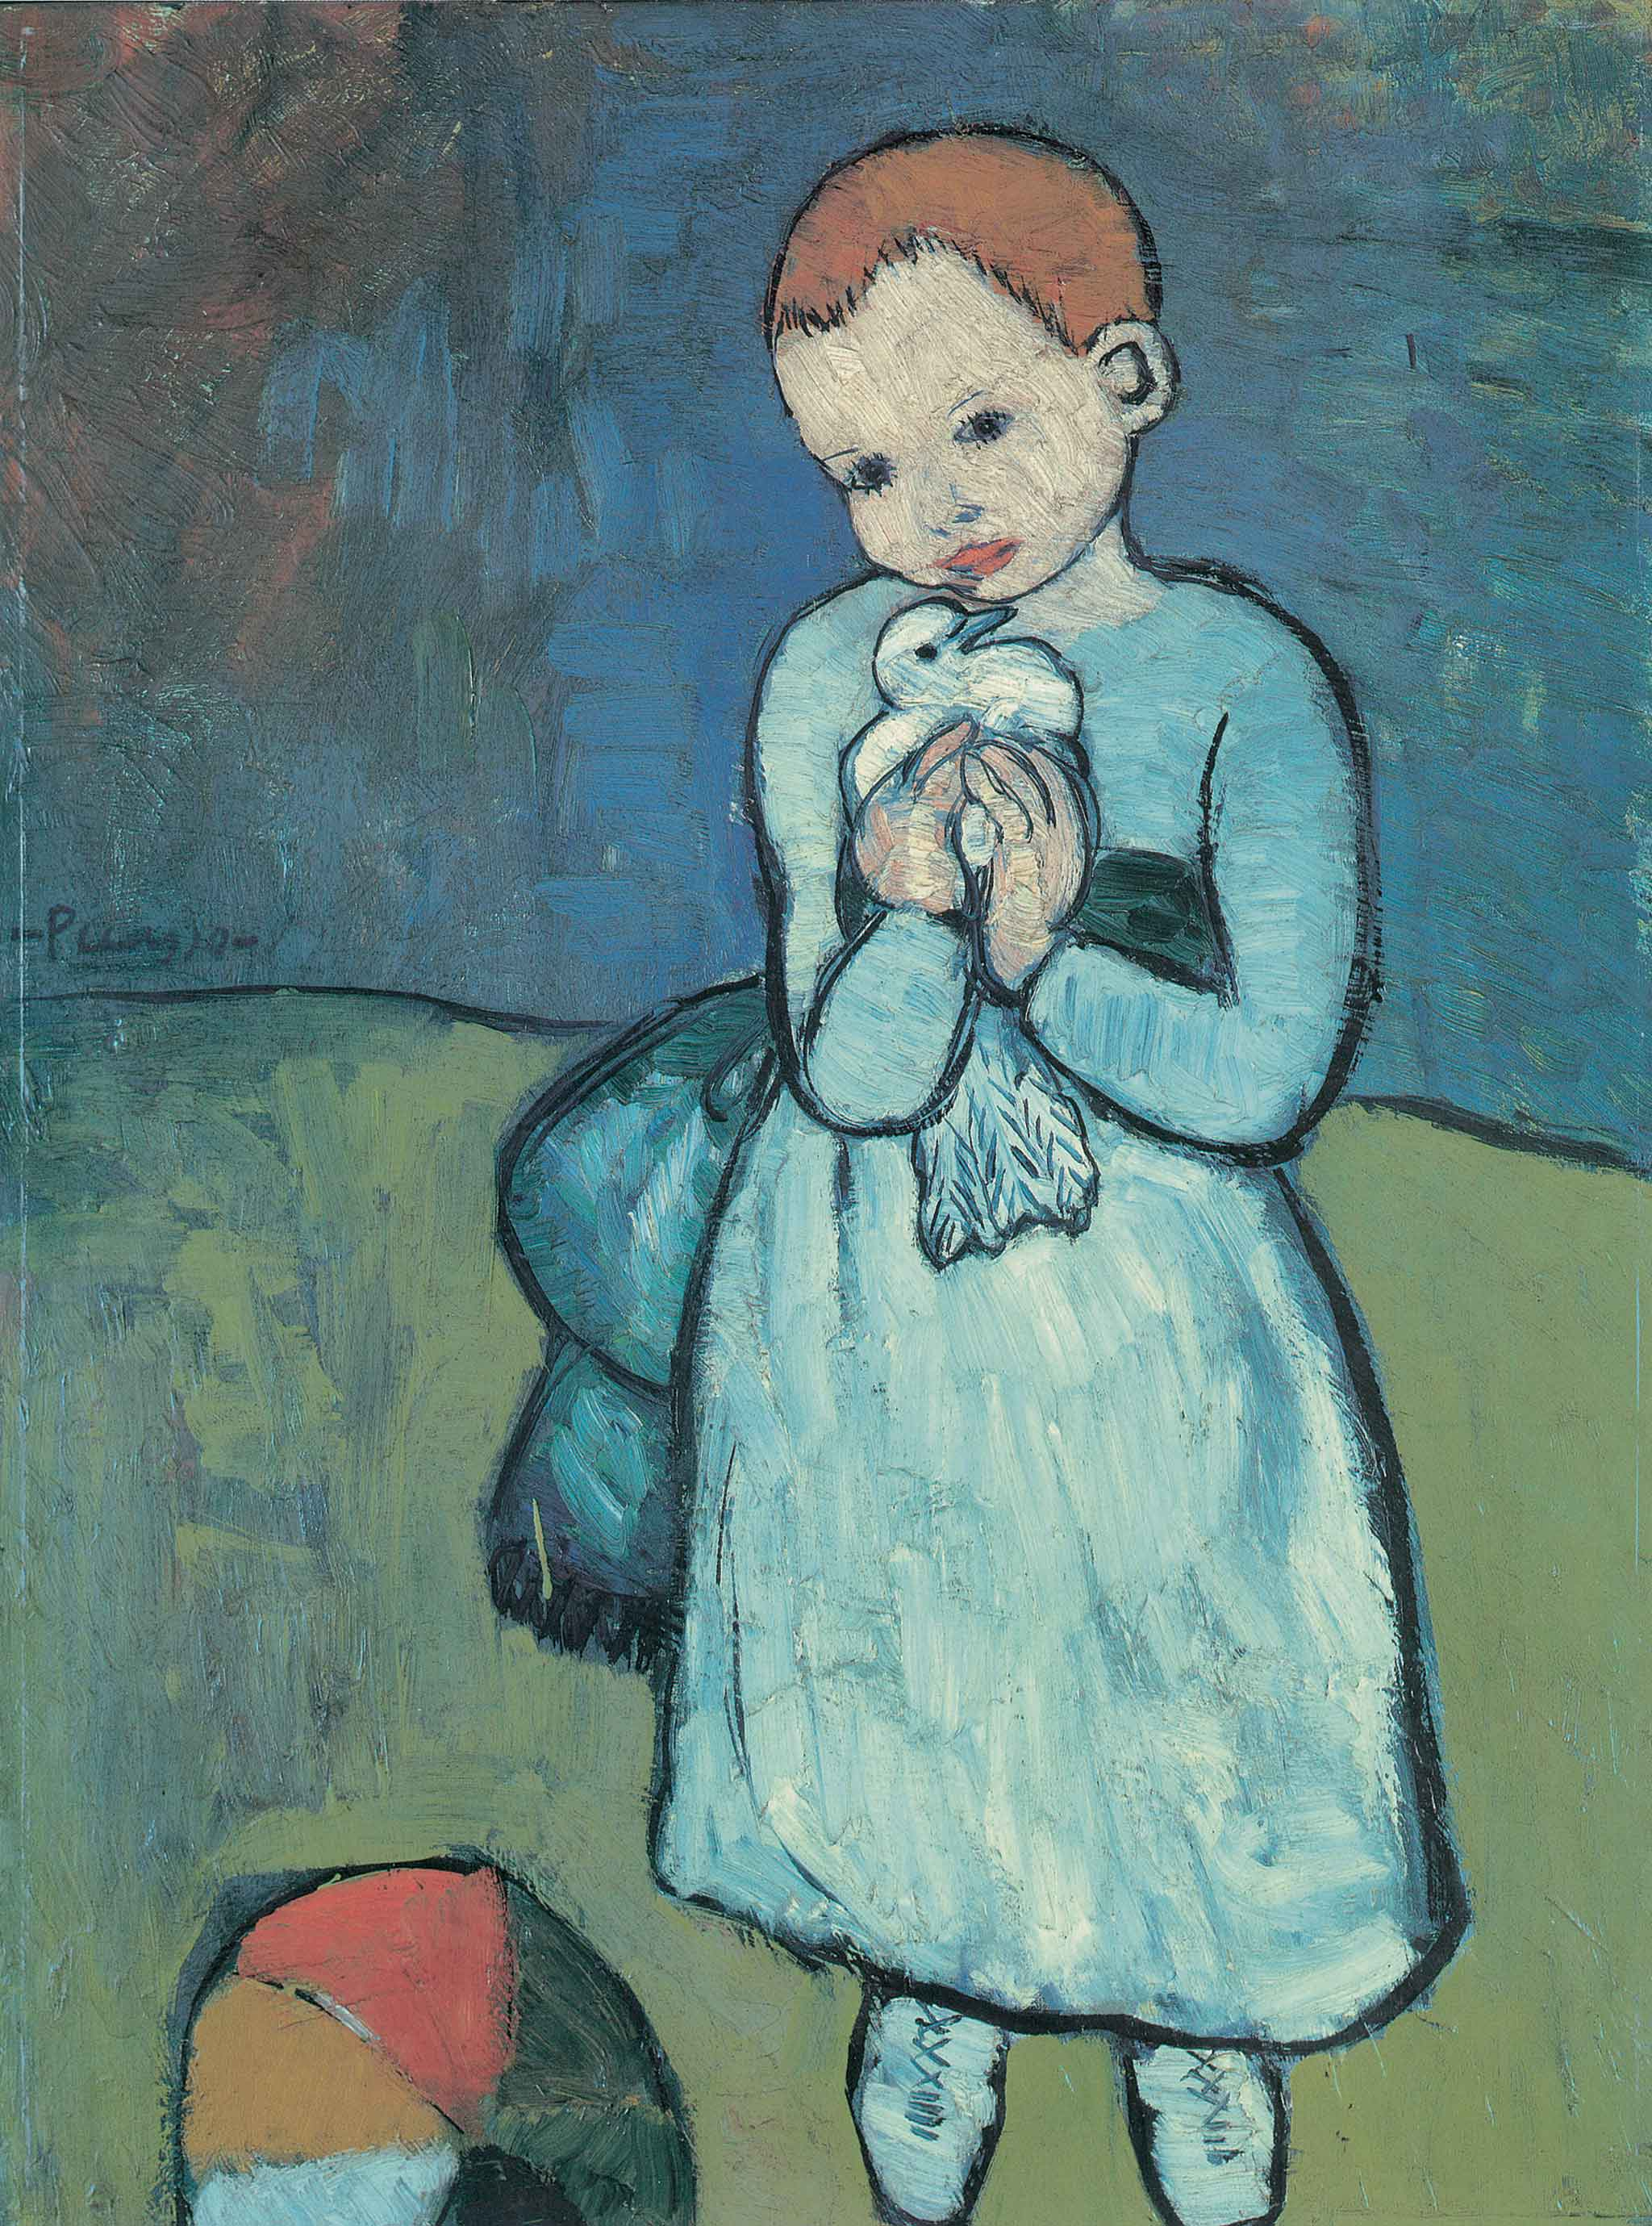 Pablo Picasso Obras Jpg Pablo Picasso S Child With A Dove To Leave Britain After 90 Years